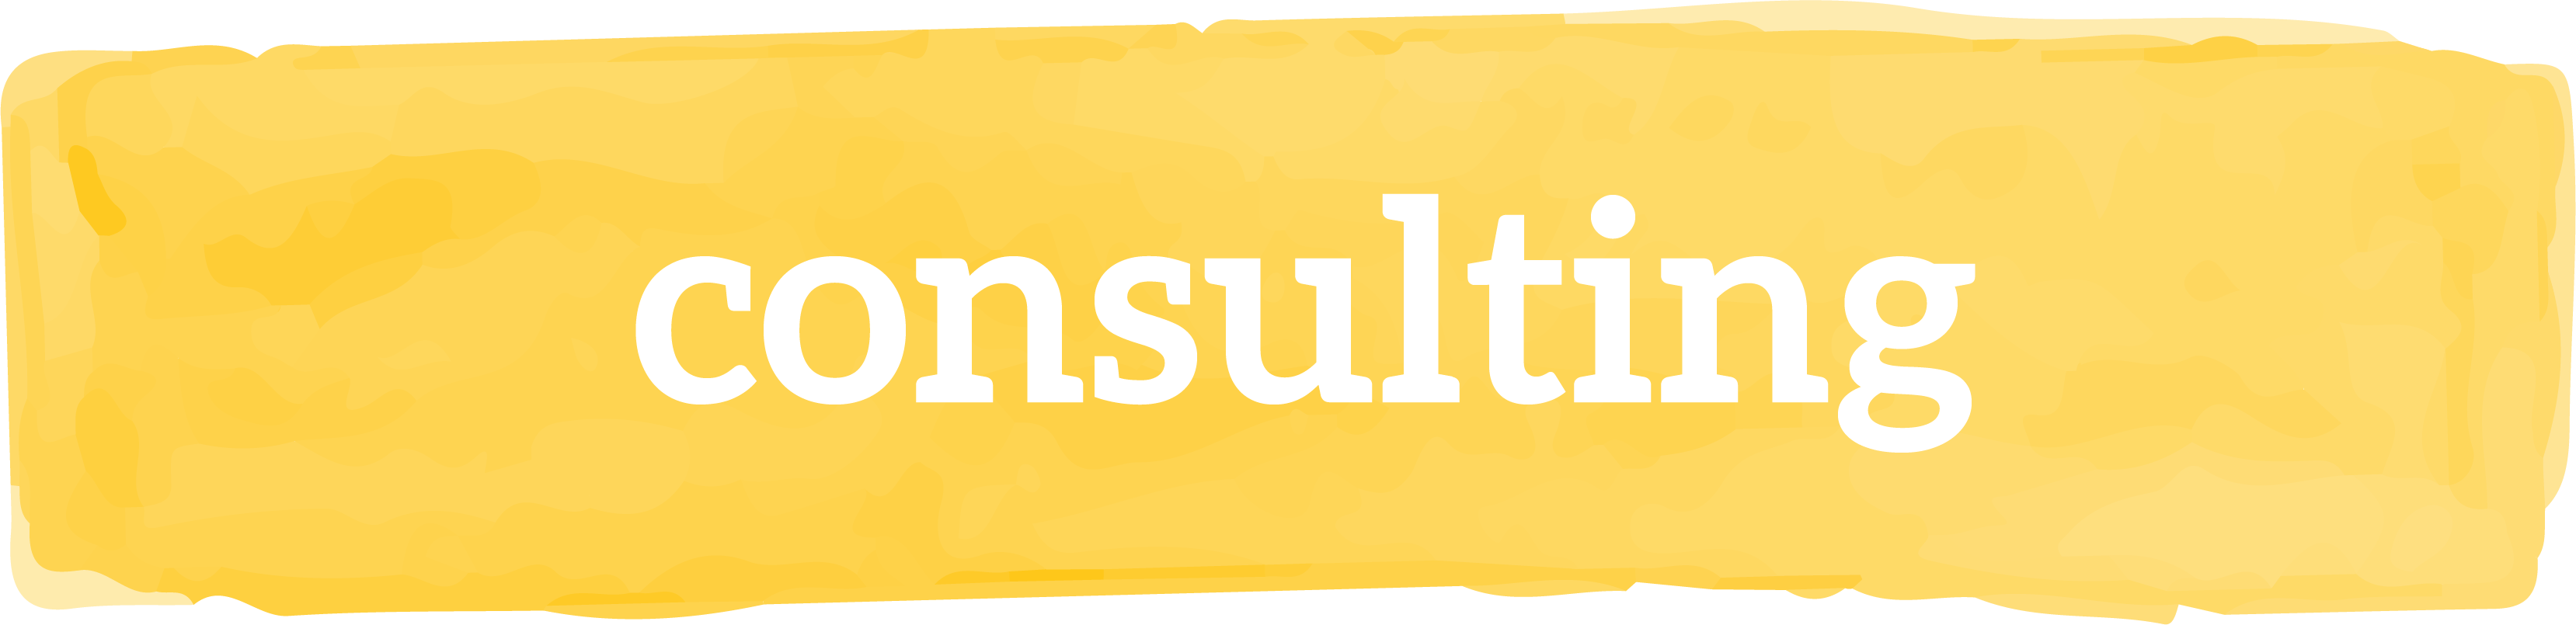 consulting-header